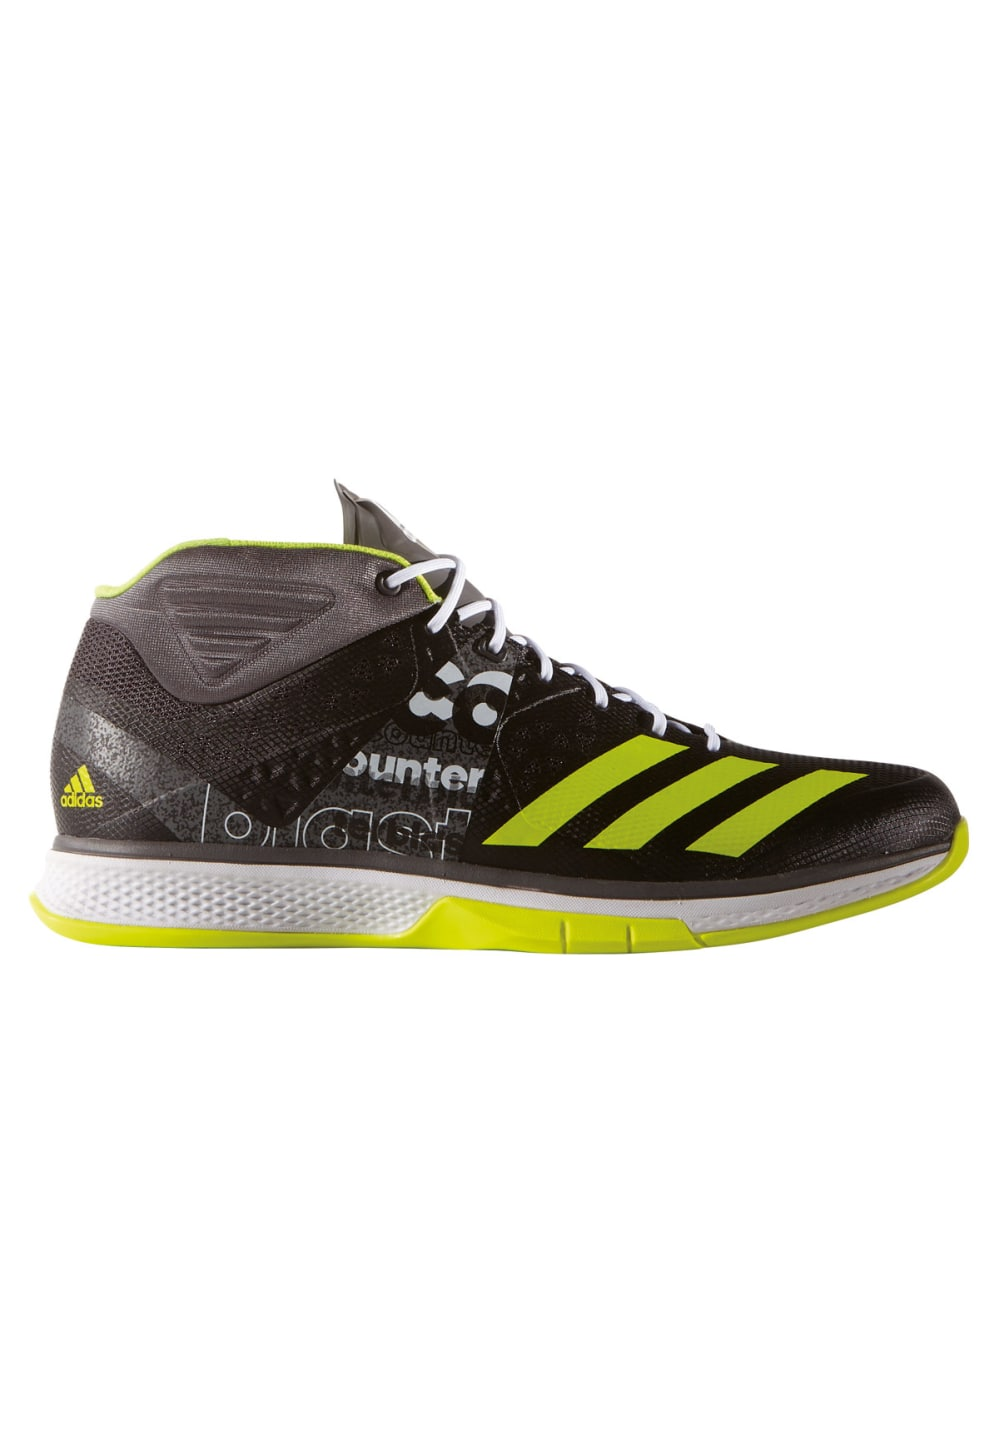 size 40 8a297 e0a69 Chaussures Falcon Adidas Handball Qwp0pr Homme Pour Counterblast Mid FZZpg